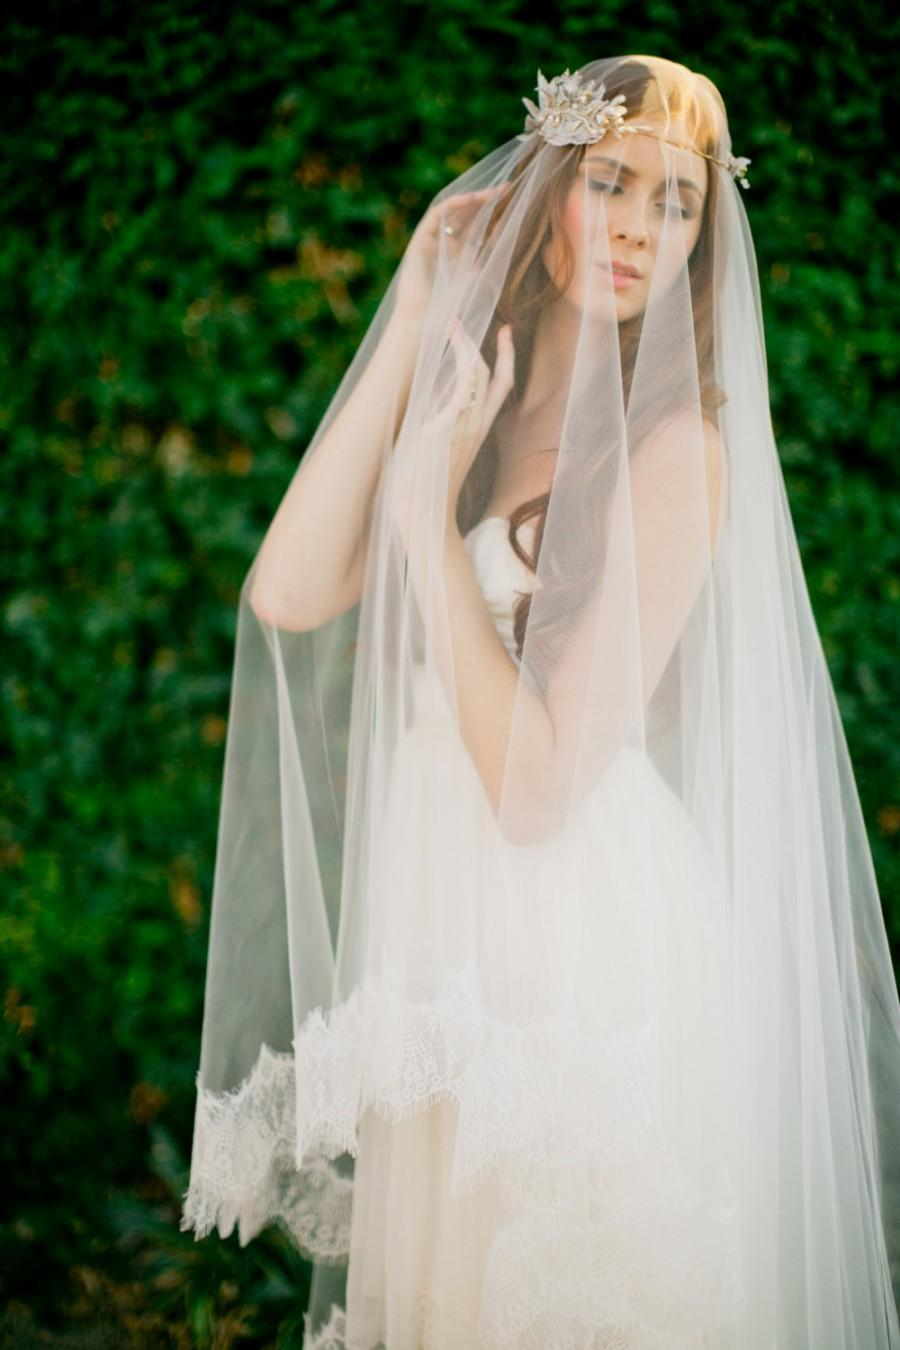 Wedding - Bridal veil- double layer veil- fingertip veil-drop veil-wedding veil- waltz veil- circle blusher veil- cathedral veil-style 100